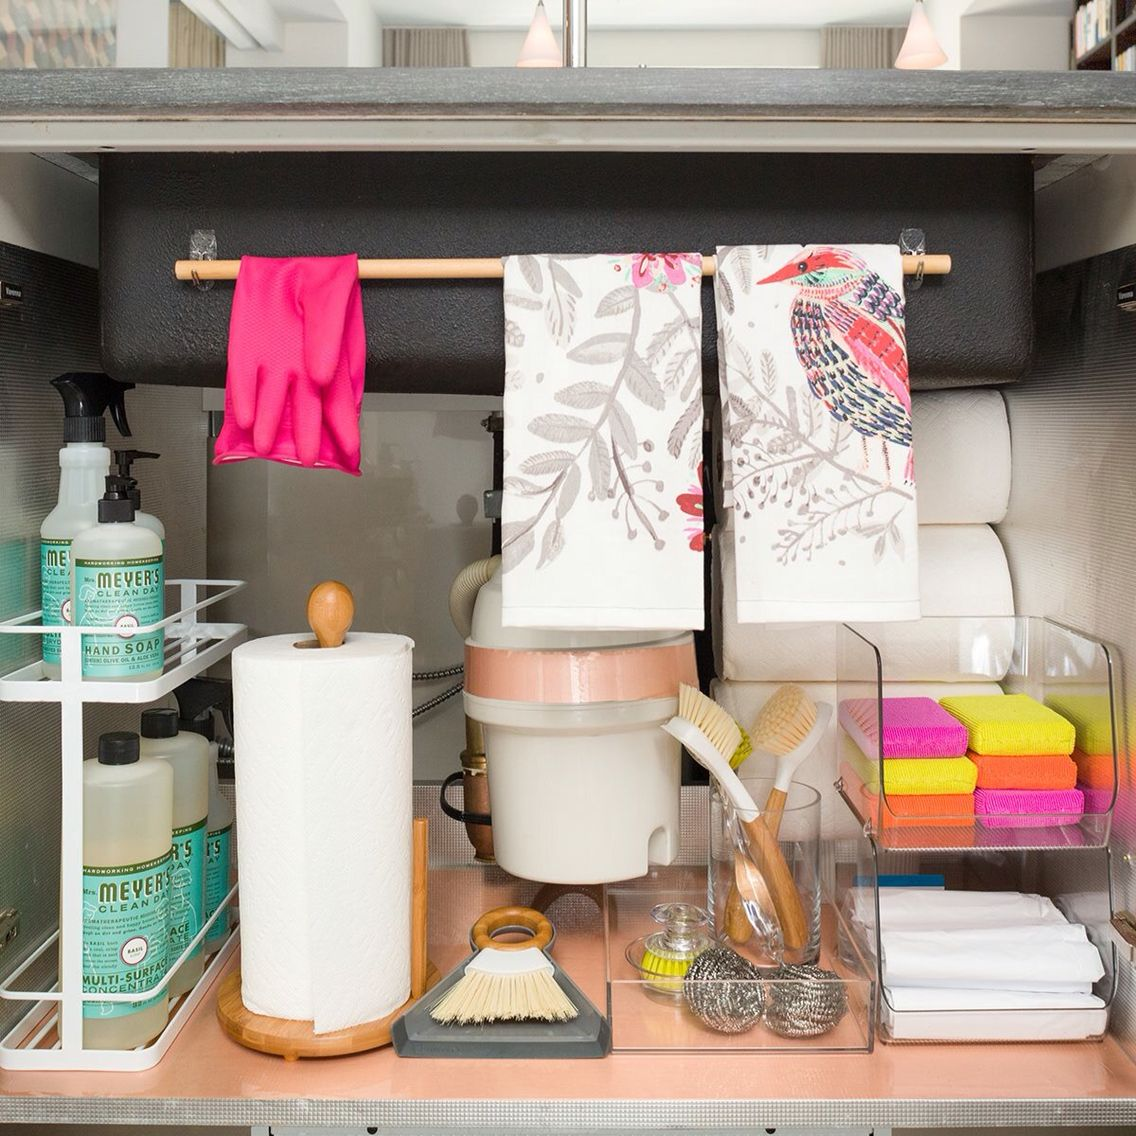 Kitchen Sink Organizer Ideas A Dozen Genius Ways To Organize Under The Sink  Sinks Organizing